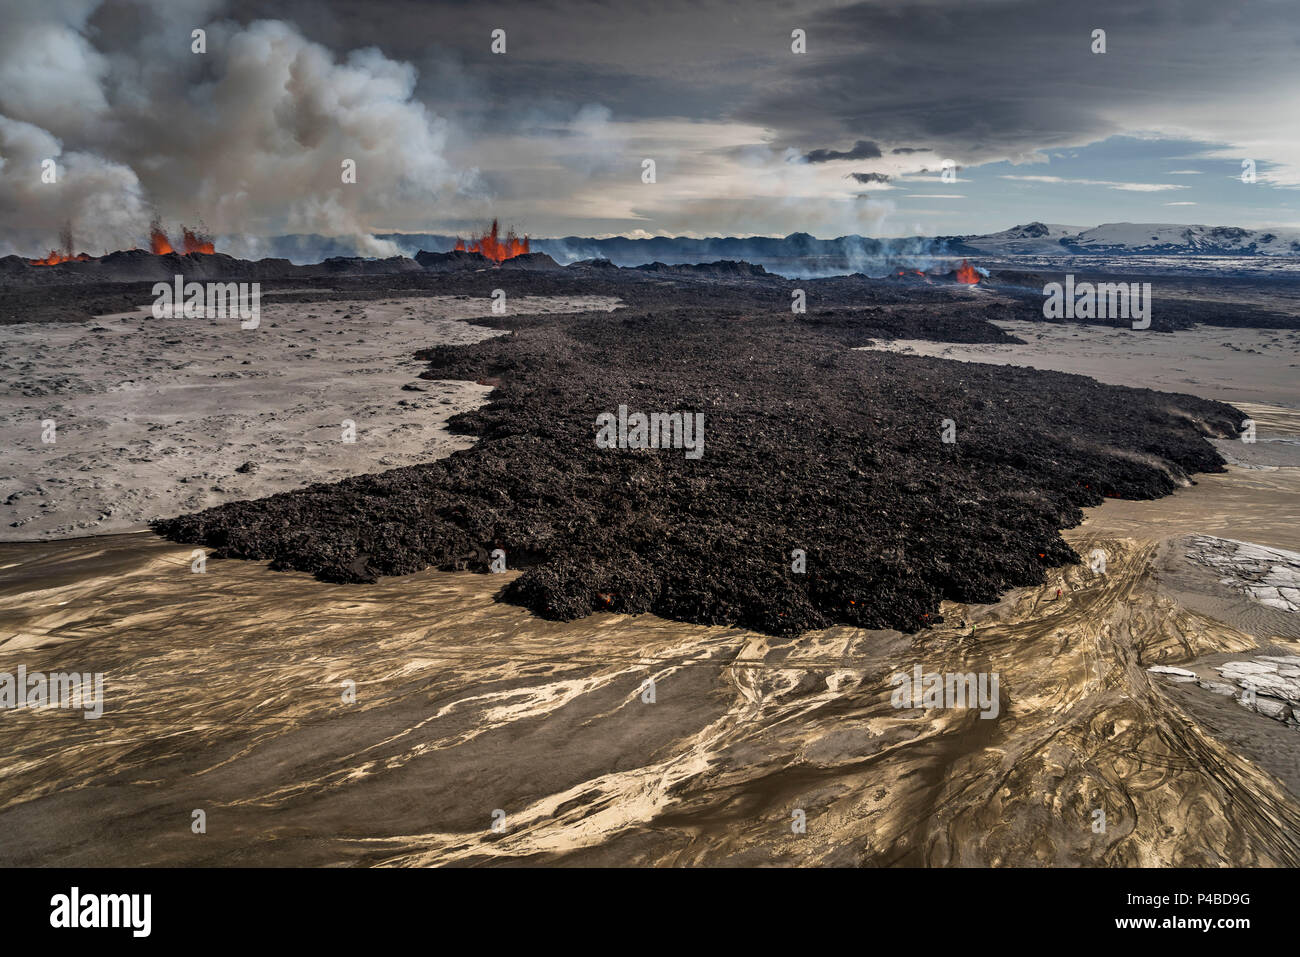 Lava and plumes from the Holuhraun Fissure by the Bardarbunga Volcano, Iceland. August 29, 2014, a fissure eruption started in Holuhraun at the northern end of a magma intrusion which had moved progressively north, from the Bardarbunga volcano. Picture date Sept 3, 2014. - Stock Image